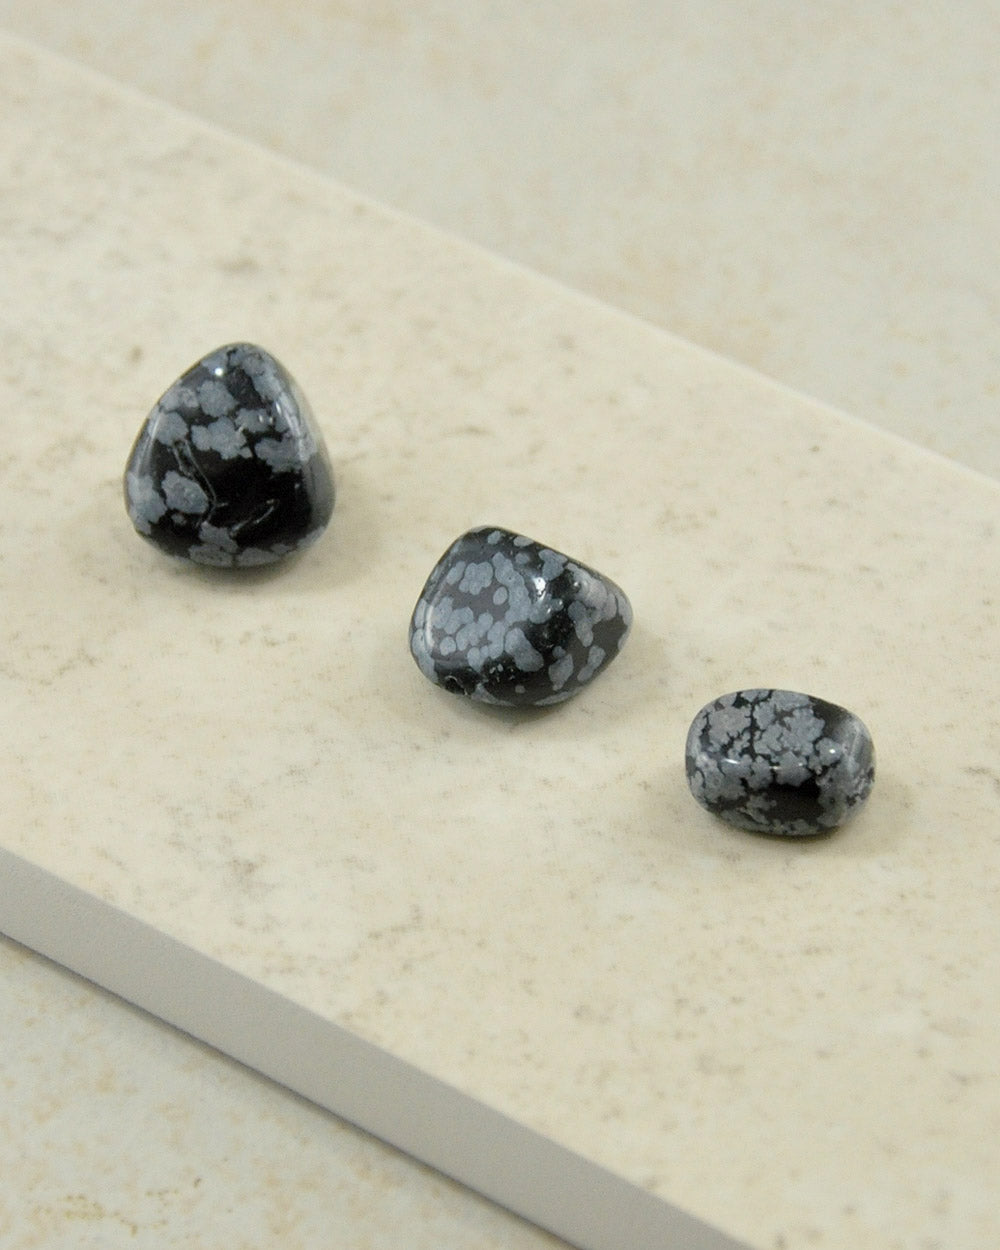 Snowflake Obsidian Palm Stones - Set of 3